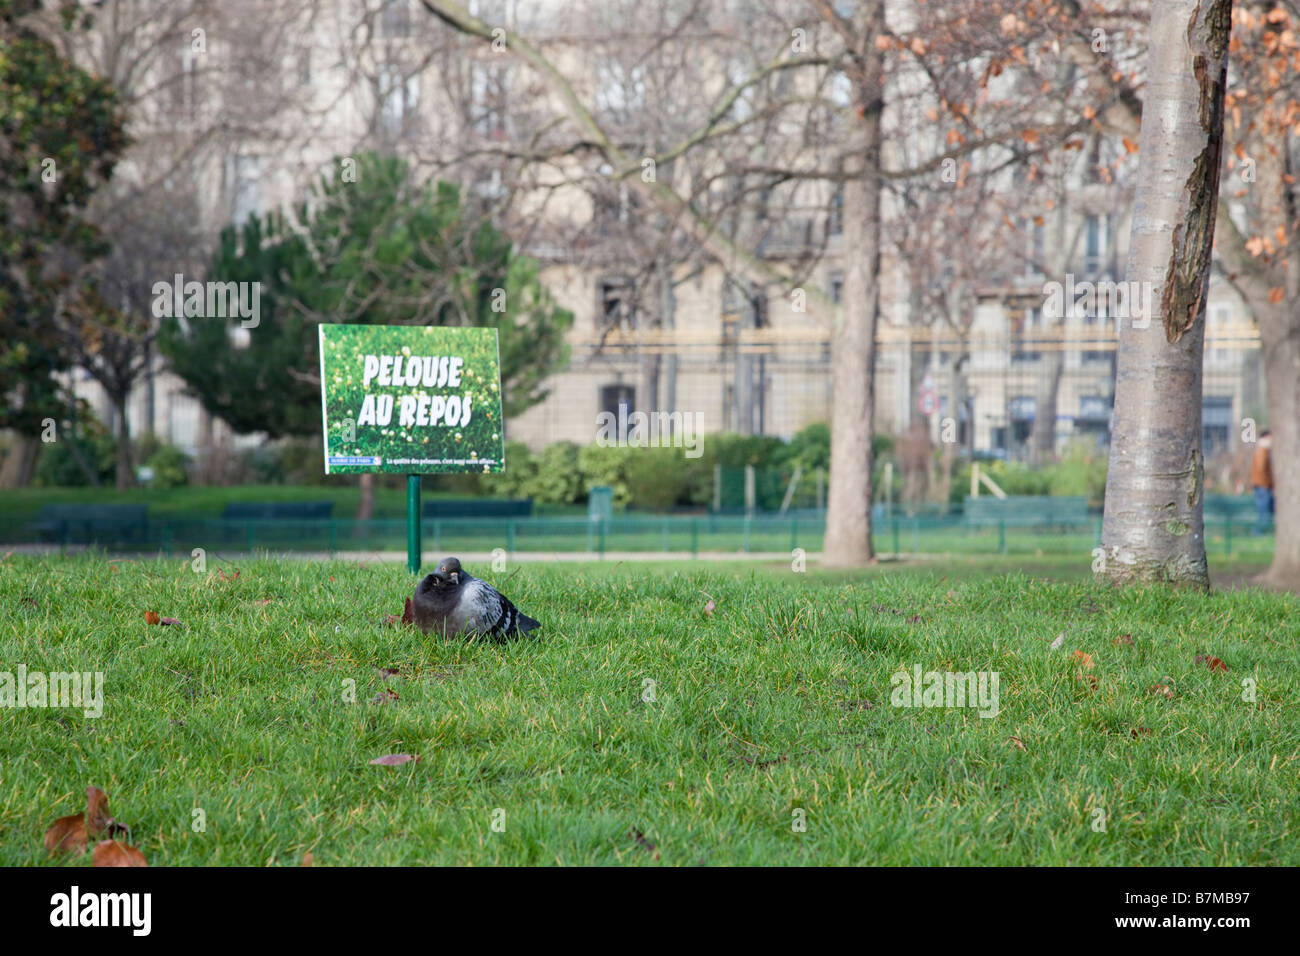 Pigeon resting by a 'Pelouse au repos' sign - Stock Image